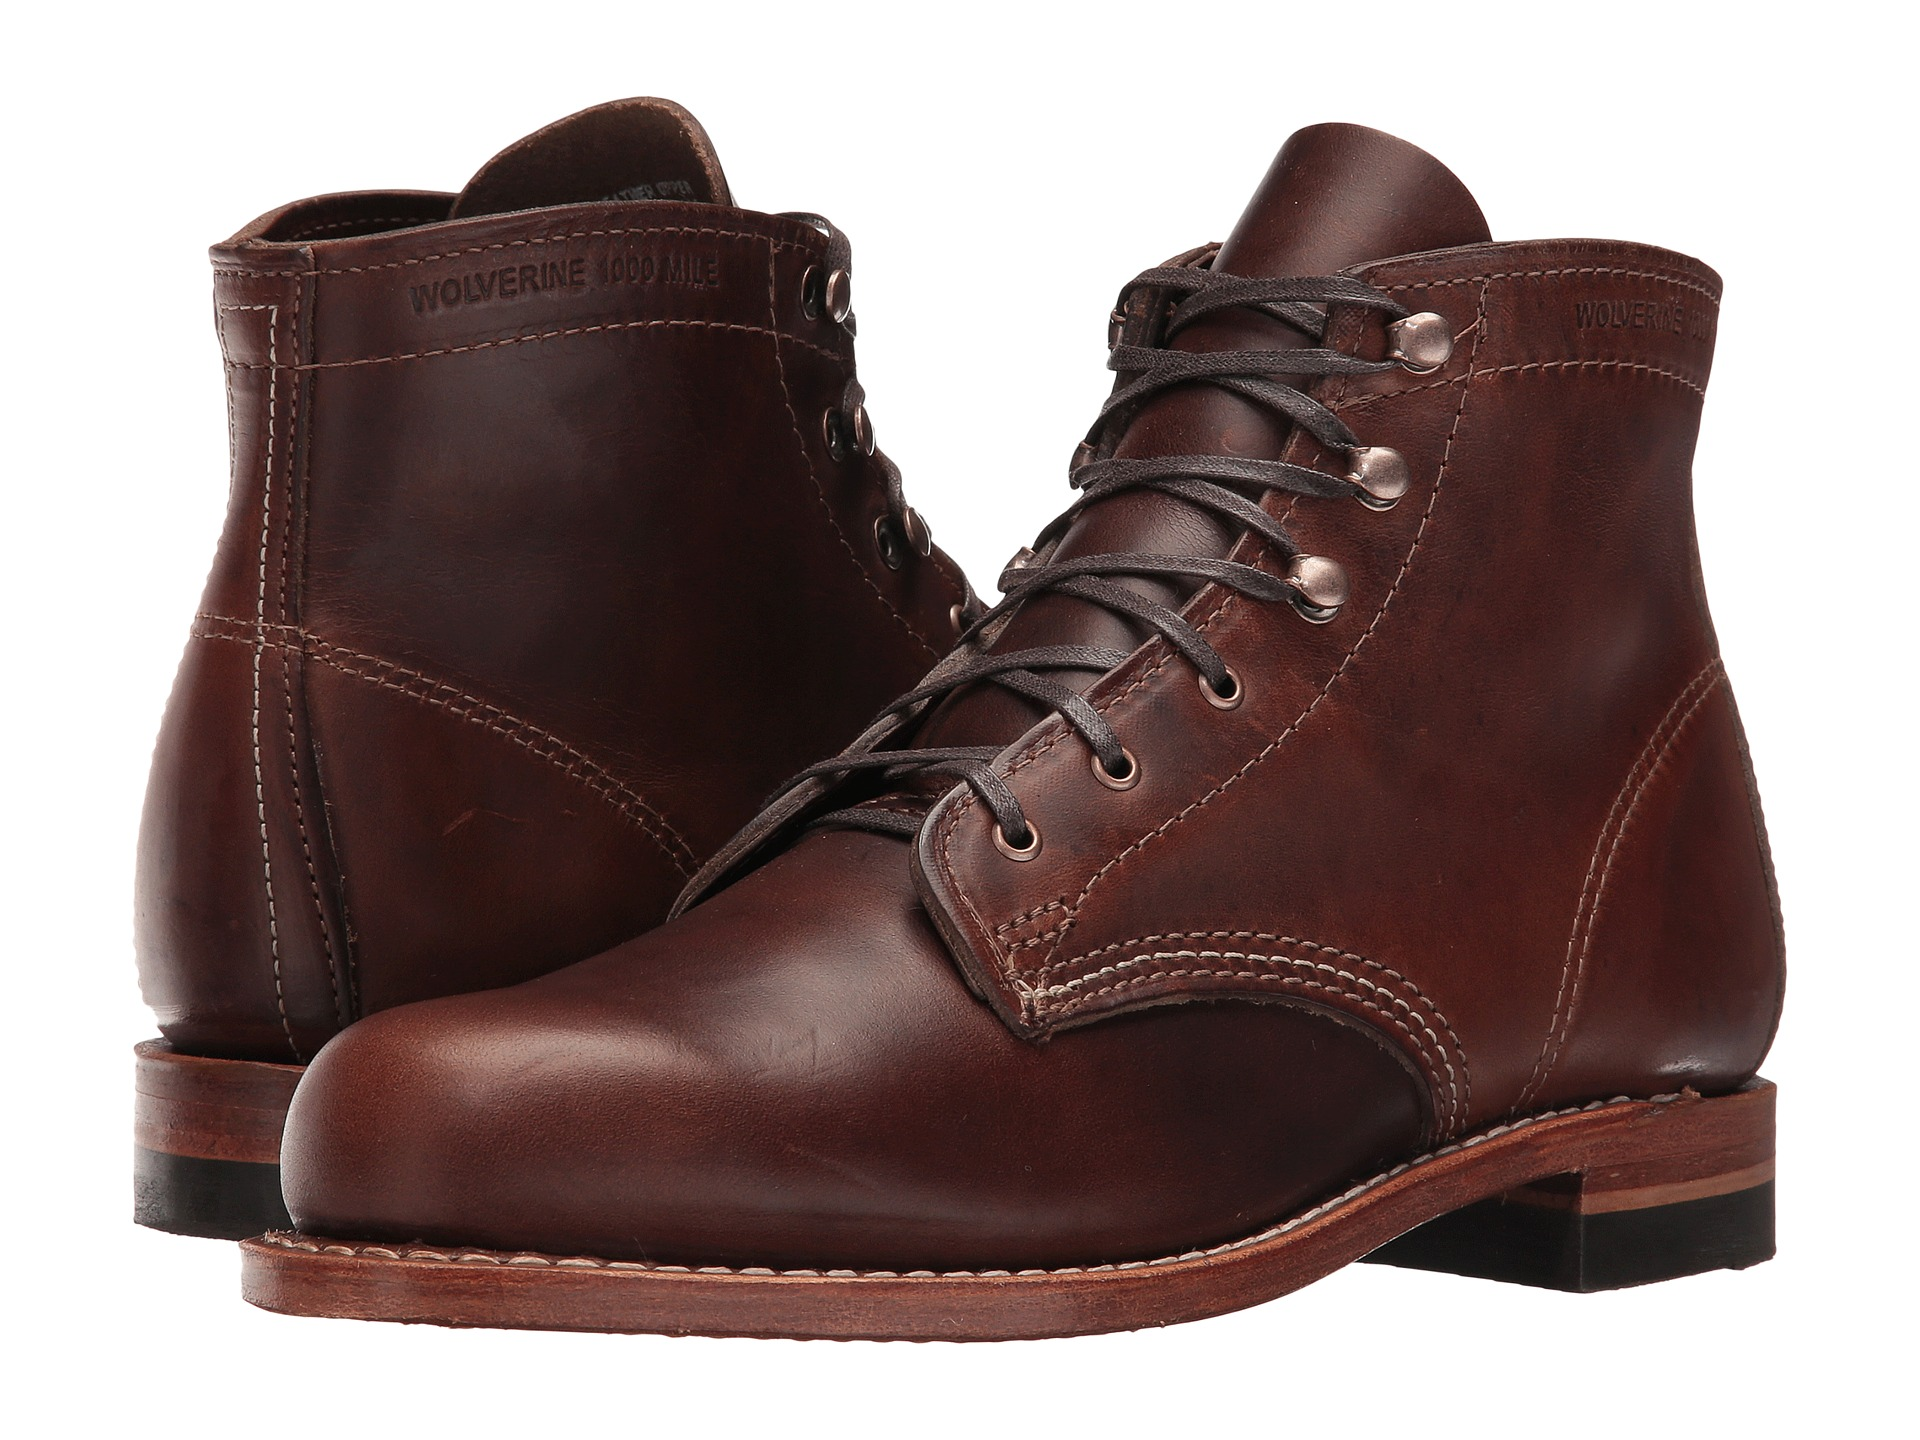 Wolverine Original 1000 Mile Boot At Zapposcom